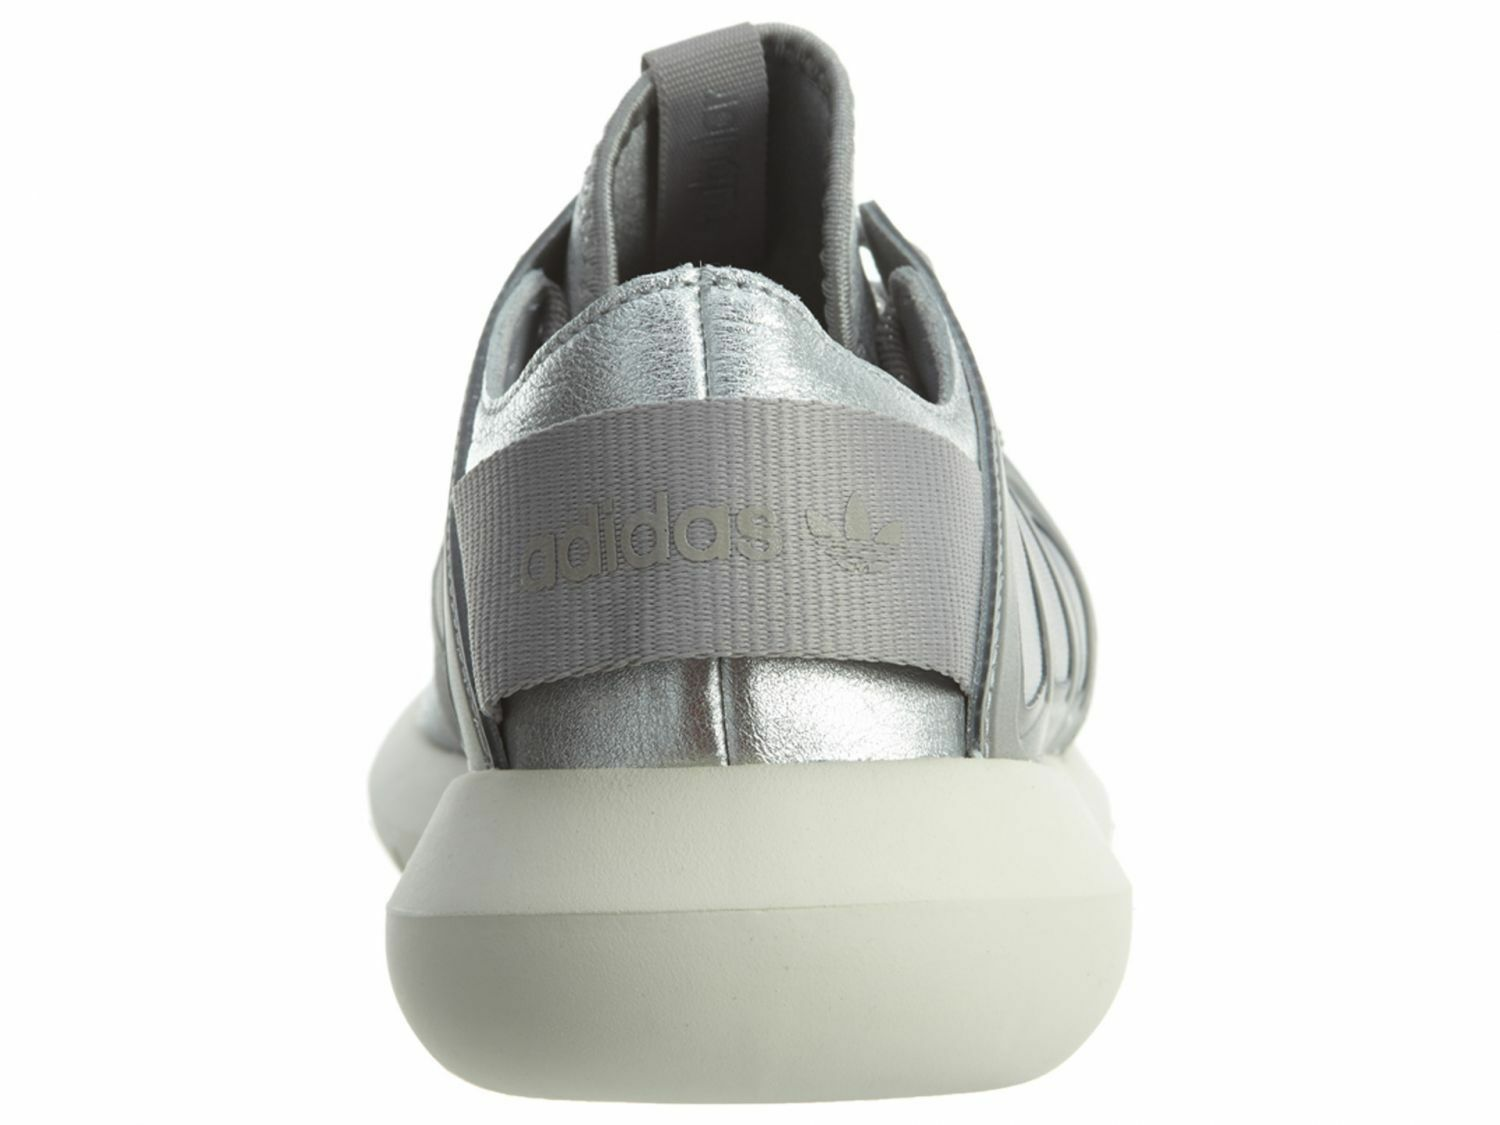 competitive price f4a12 9d929 ... Adidas Tubular Viral Womens S75907 S75907 S75907 Silver Metallic  Athletic Shoes Size 8 7d2b1e ...